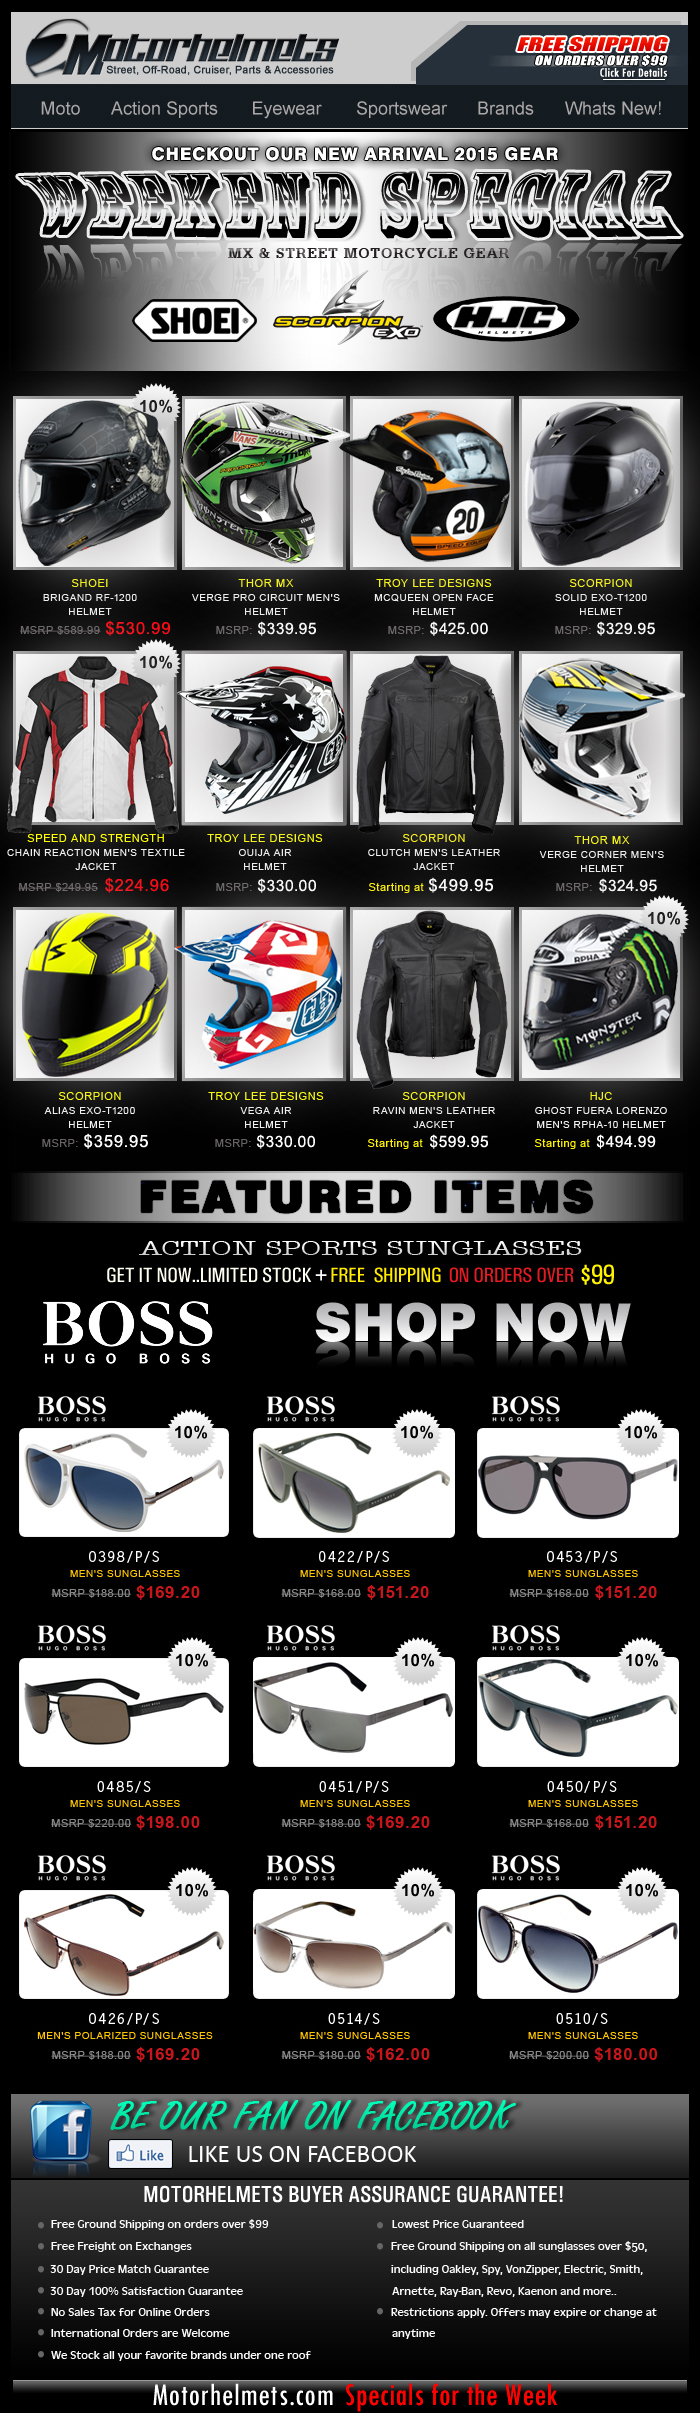 New Gear Alert...Shoei, HJC, Scorpion and more!